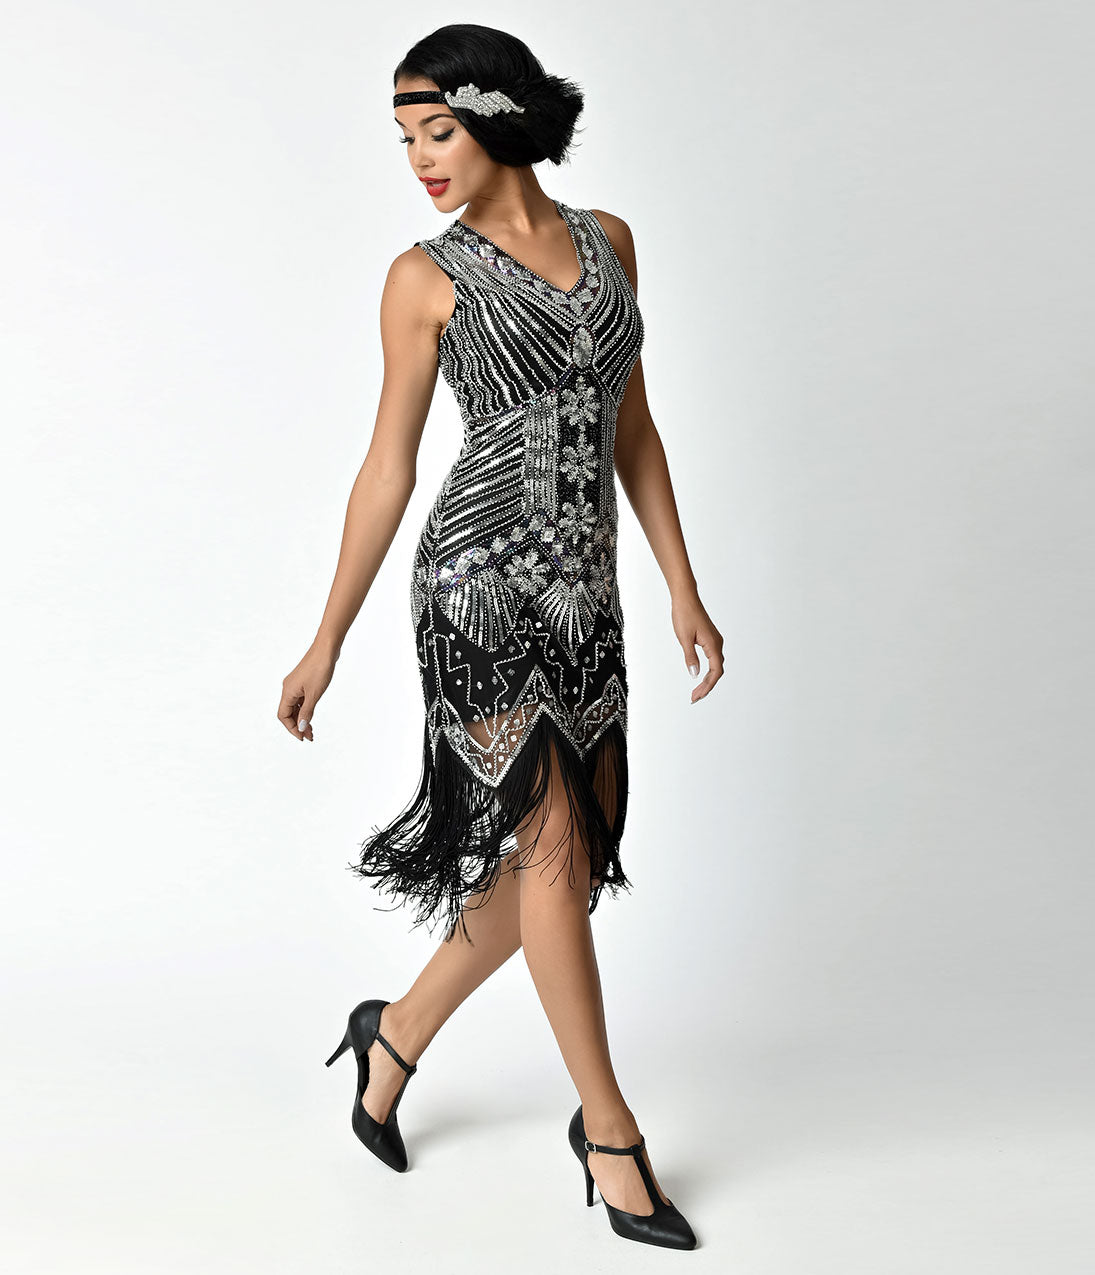 Roaring Twenties 20s Fashion Guide Unique Vintage 1920S Deco Silver Black Veronique Fringe Flapper Dress $98.00 & What to Wear: 1920s Roaring Twenties Gatsby Themed Event